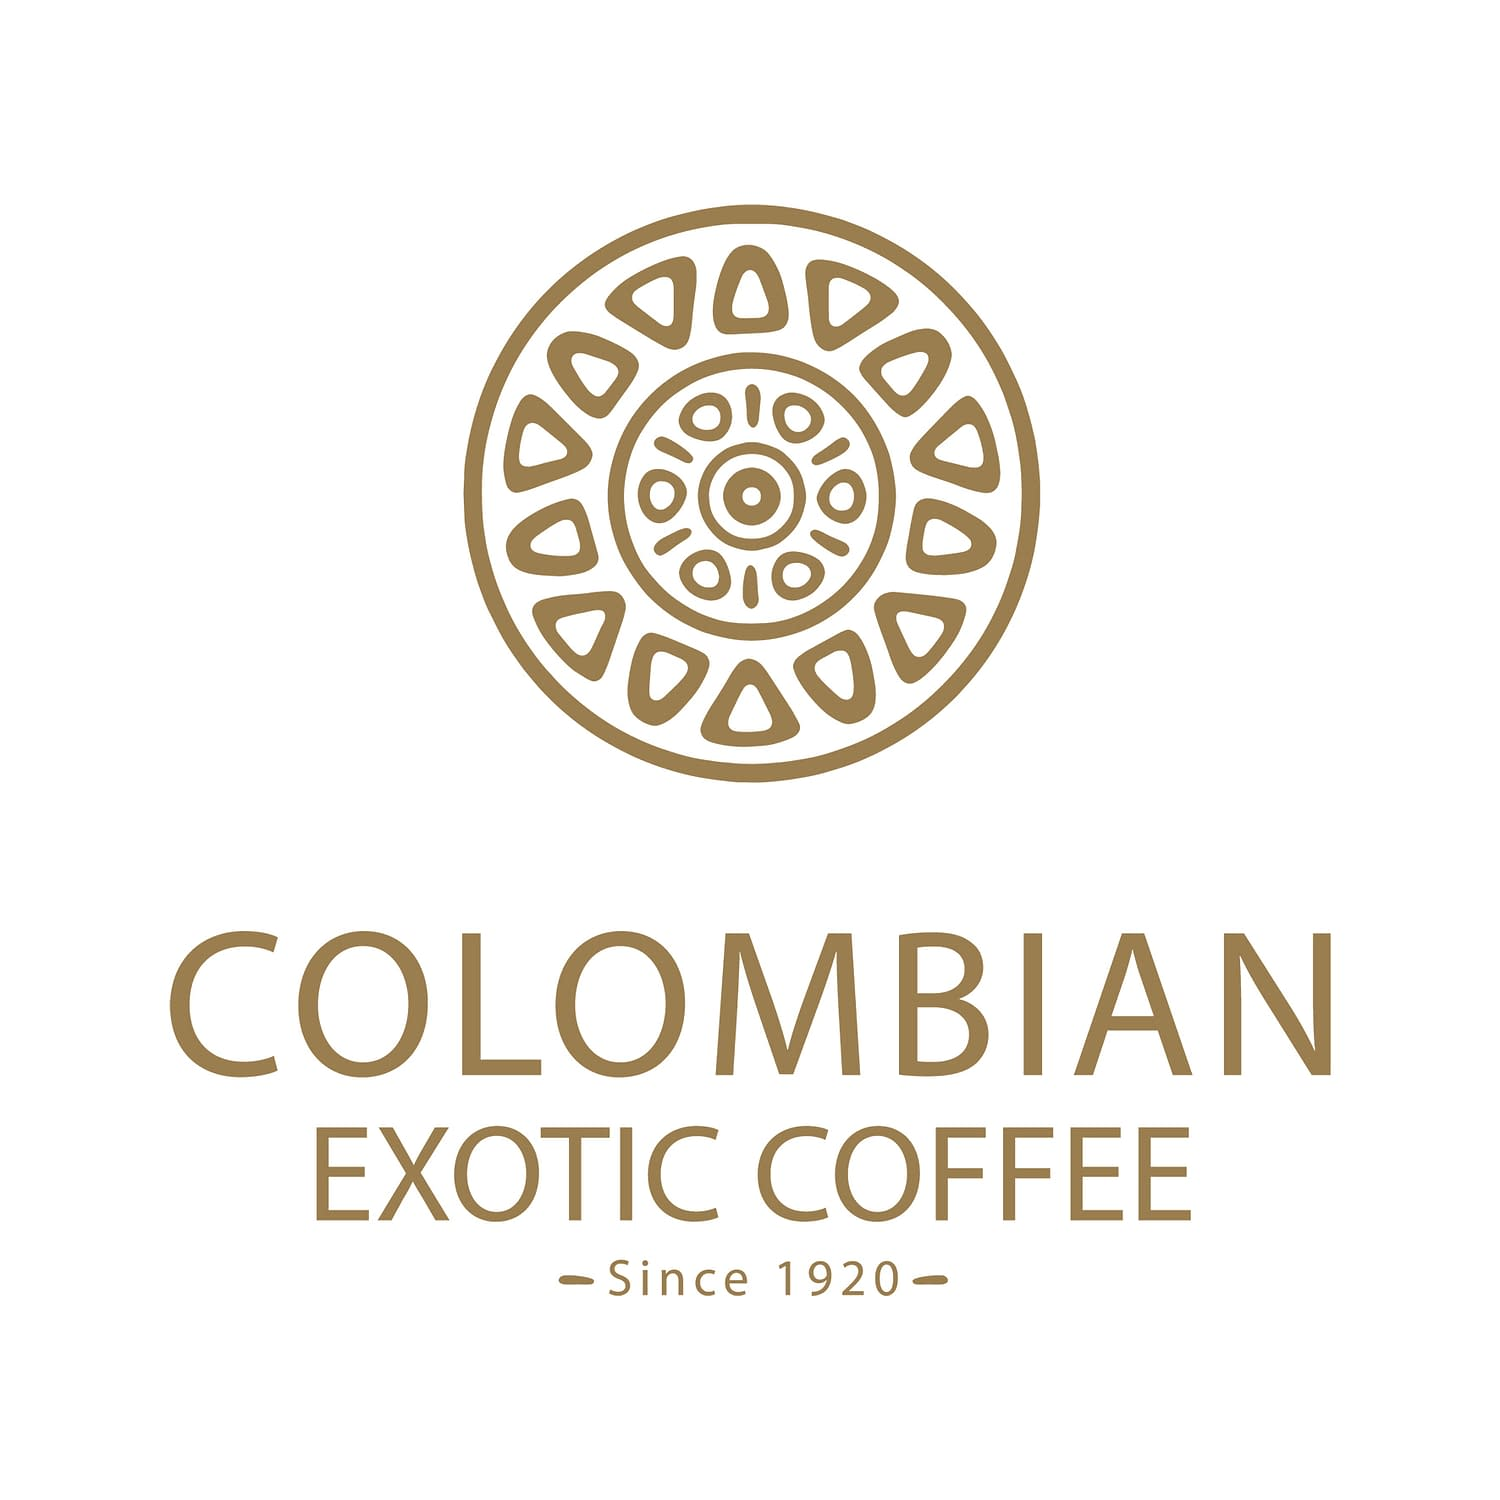 Colombian Exotic Coffee logo - gold